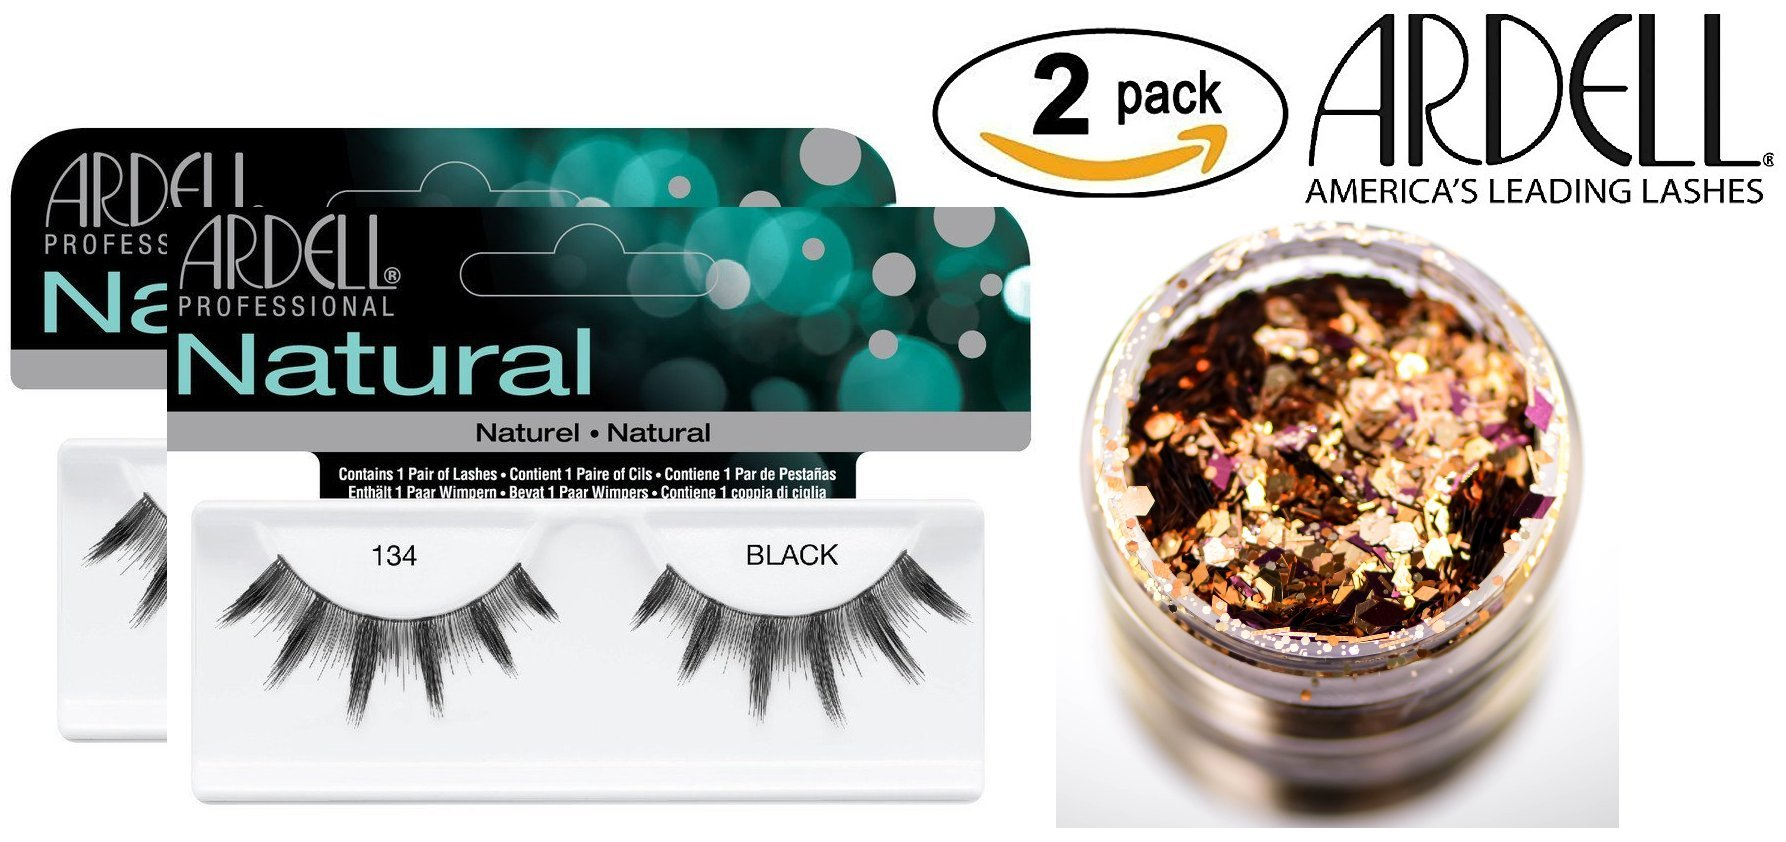 Ardell Professional NATURAL Lashes (2-PACK with bonus Skin/Hair Glitter) (134 Black (2-PACK))